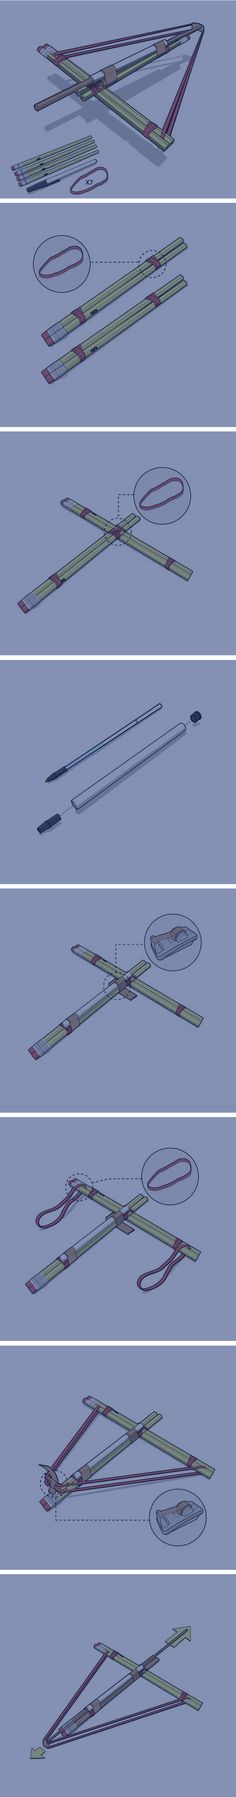 DIY simple and awesome Pencil Crossbow... are you freking kidding me right now!?!??, I made this like 3 years ago!! RIP-OFF wow ... I am just disappointed right now. It's actually called the Tharp!